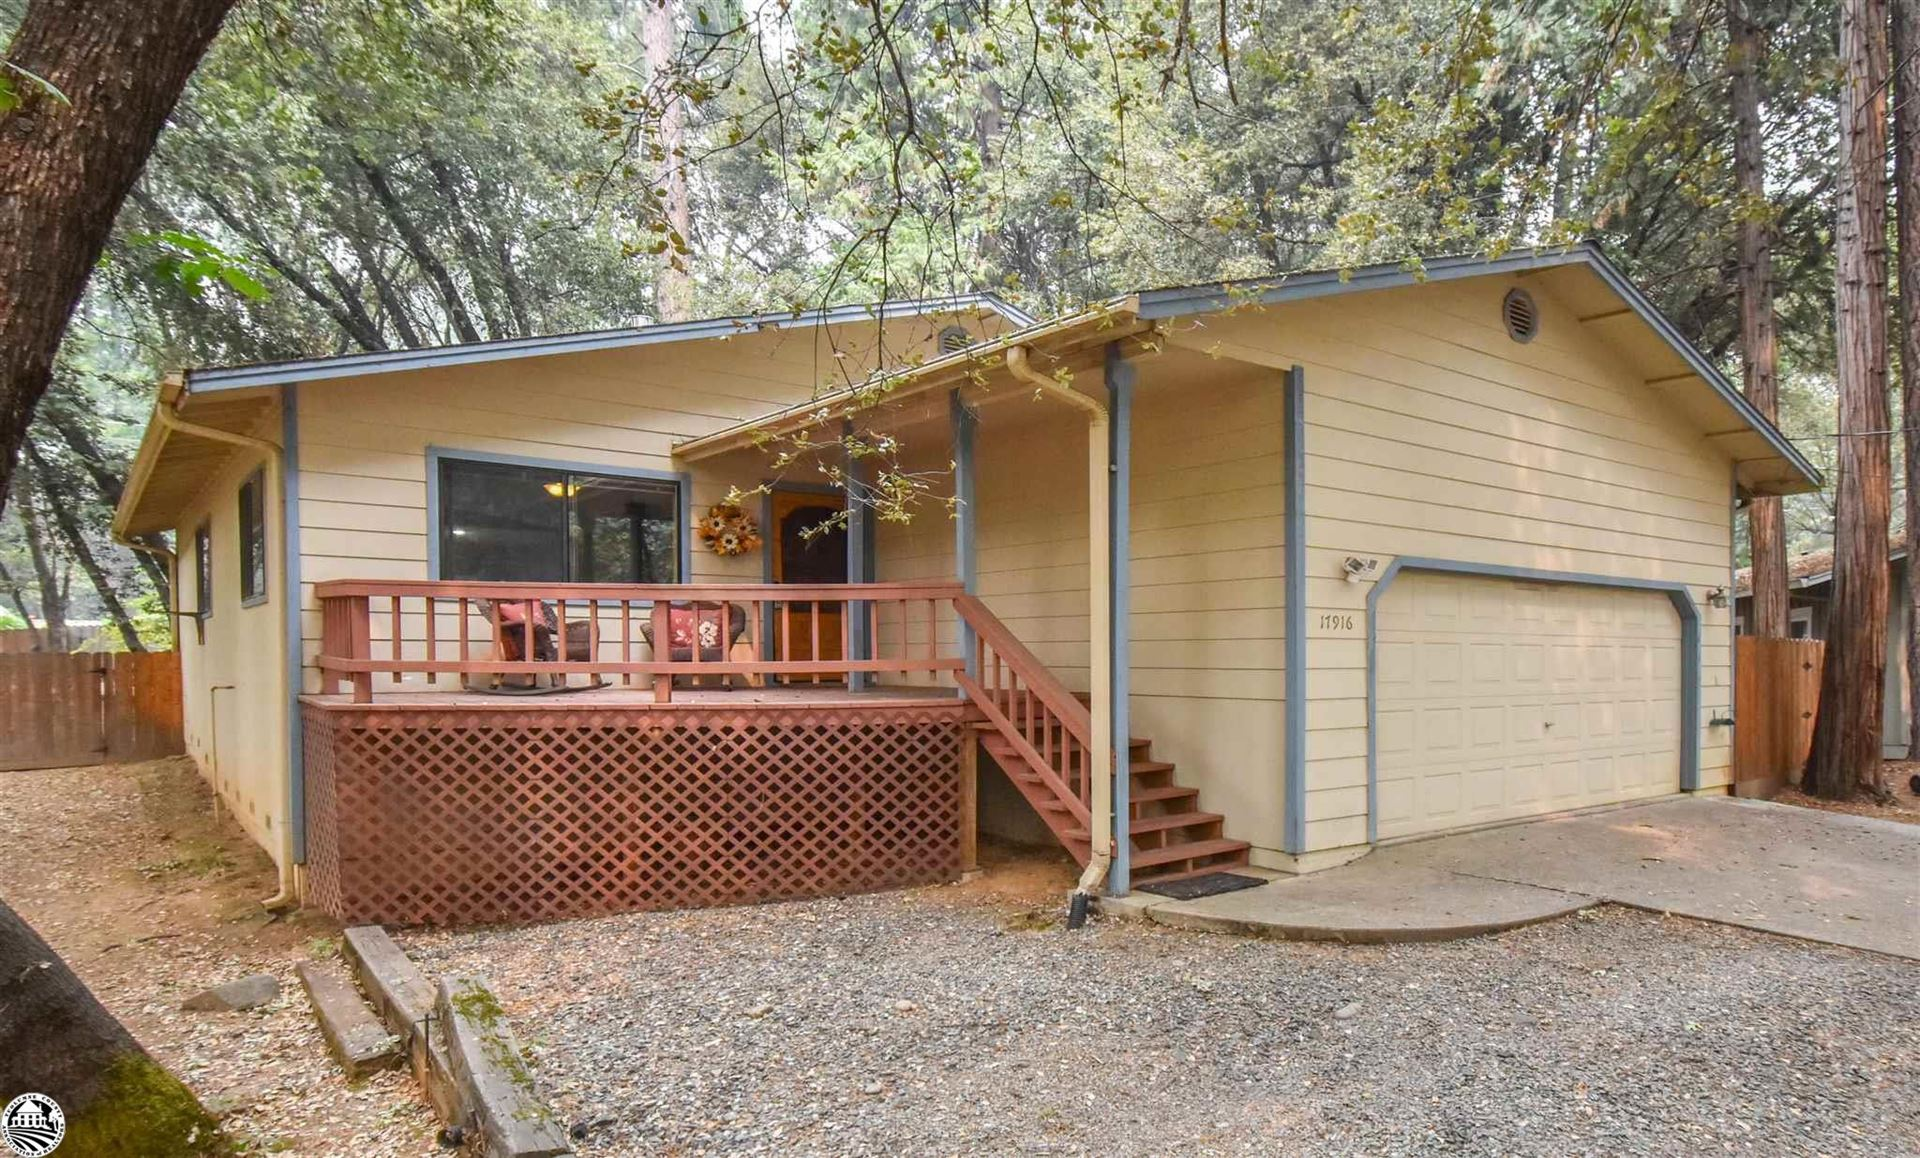 17916 Good Shepherd Dr, Sonora, CA 95370 - MLS#: 20201459